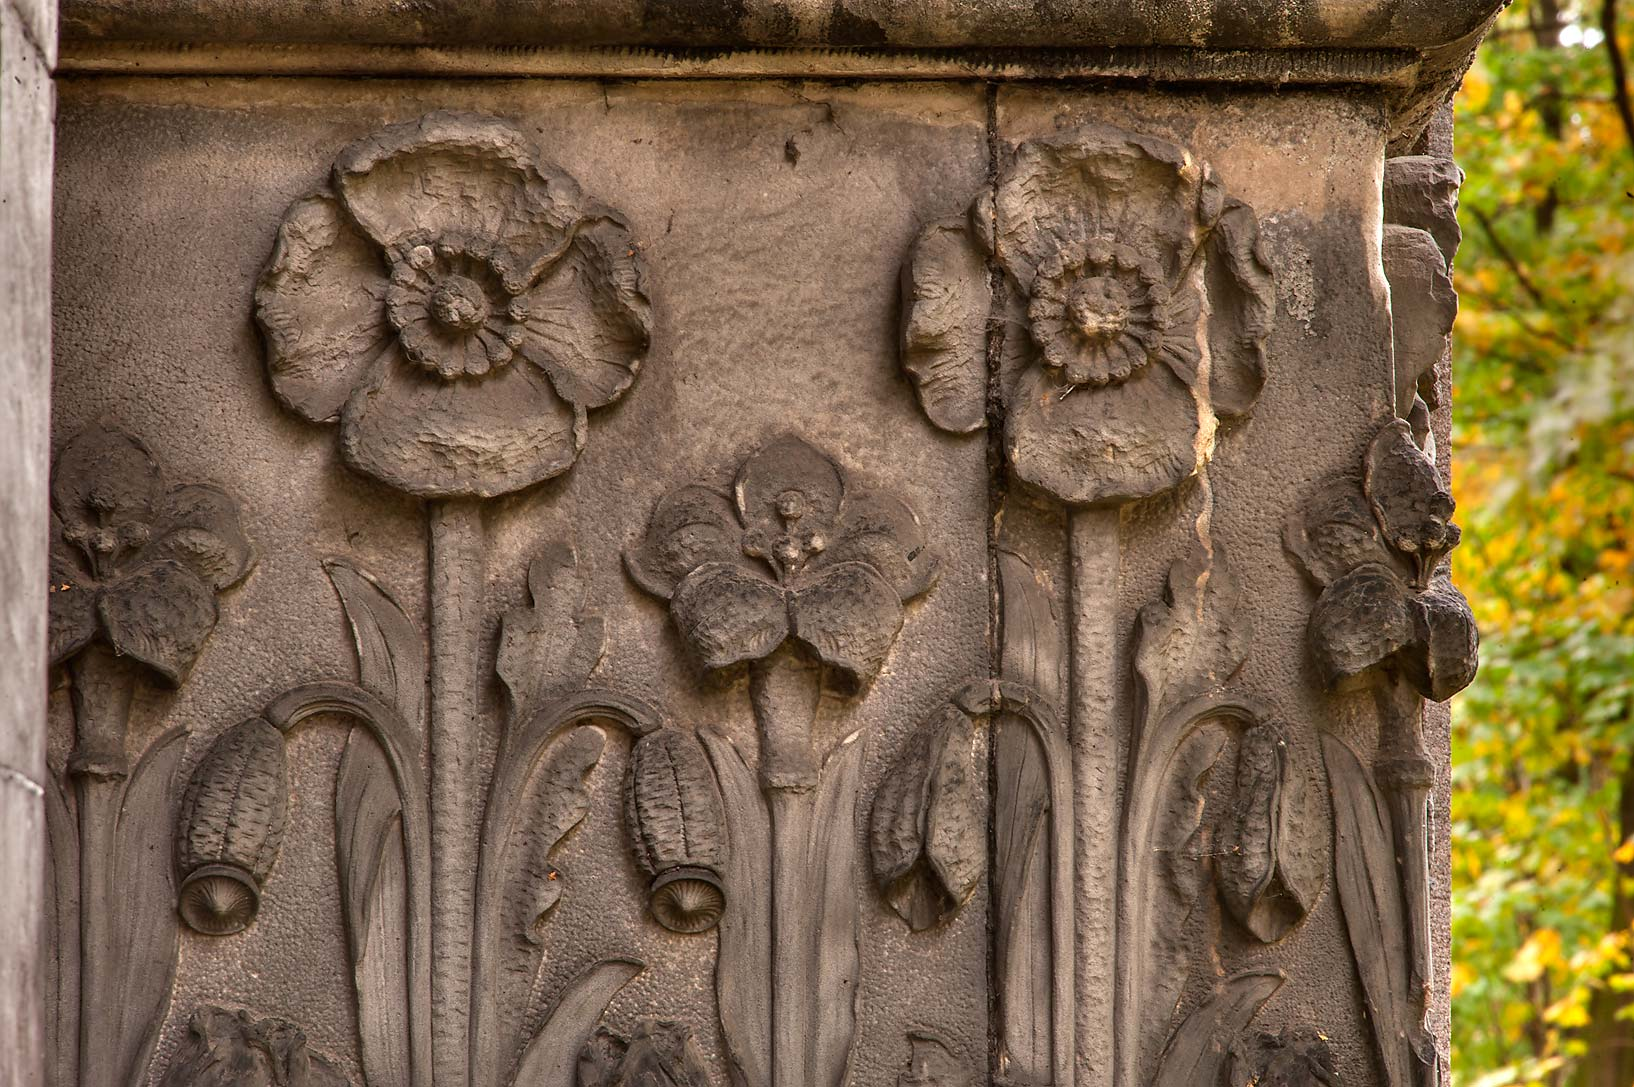 Stone flowers on walls of a mausoleum in...Prospekt. St.Petersburg, Russia